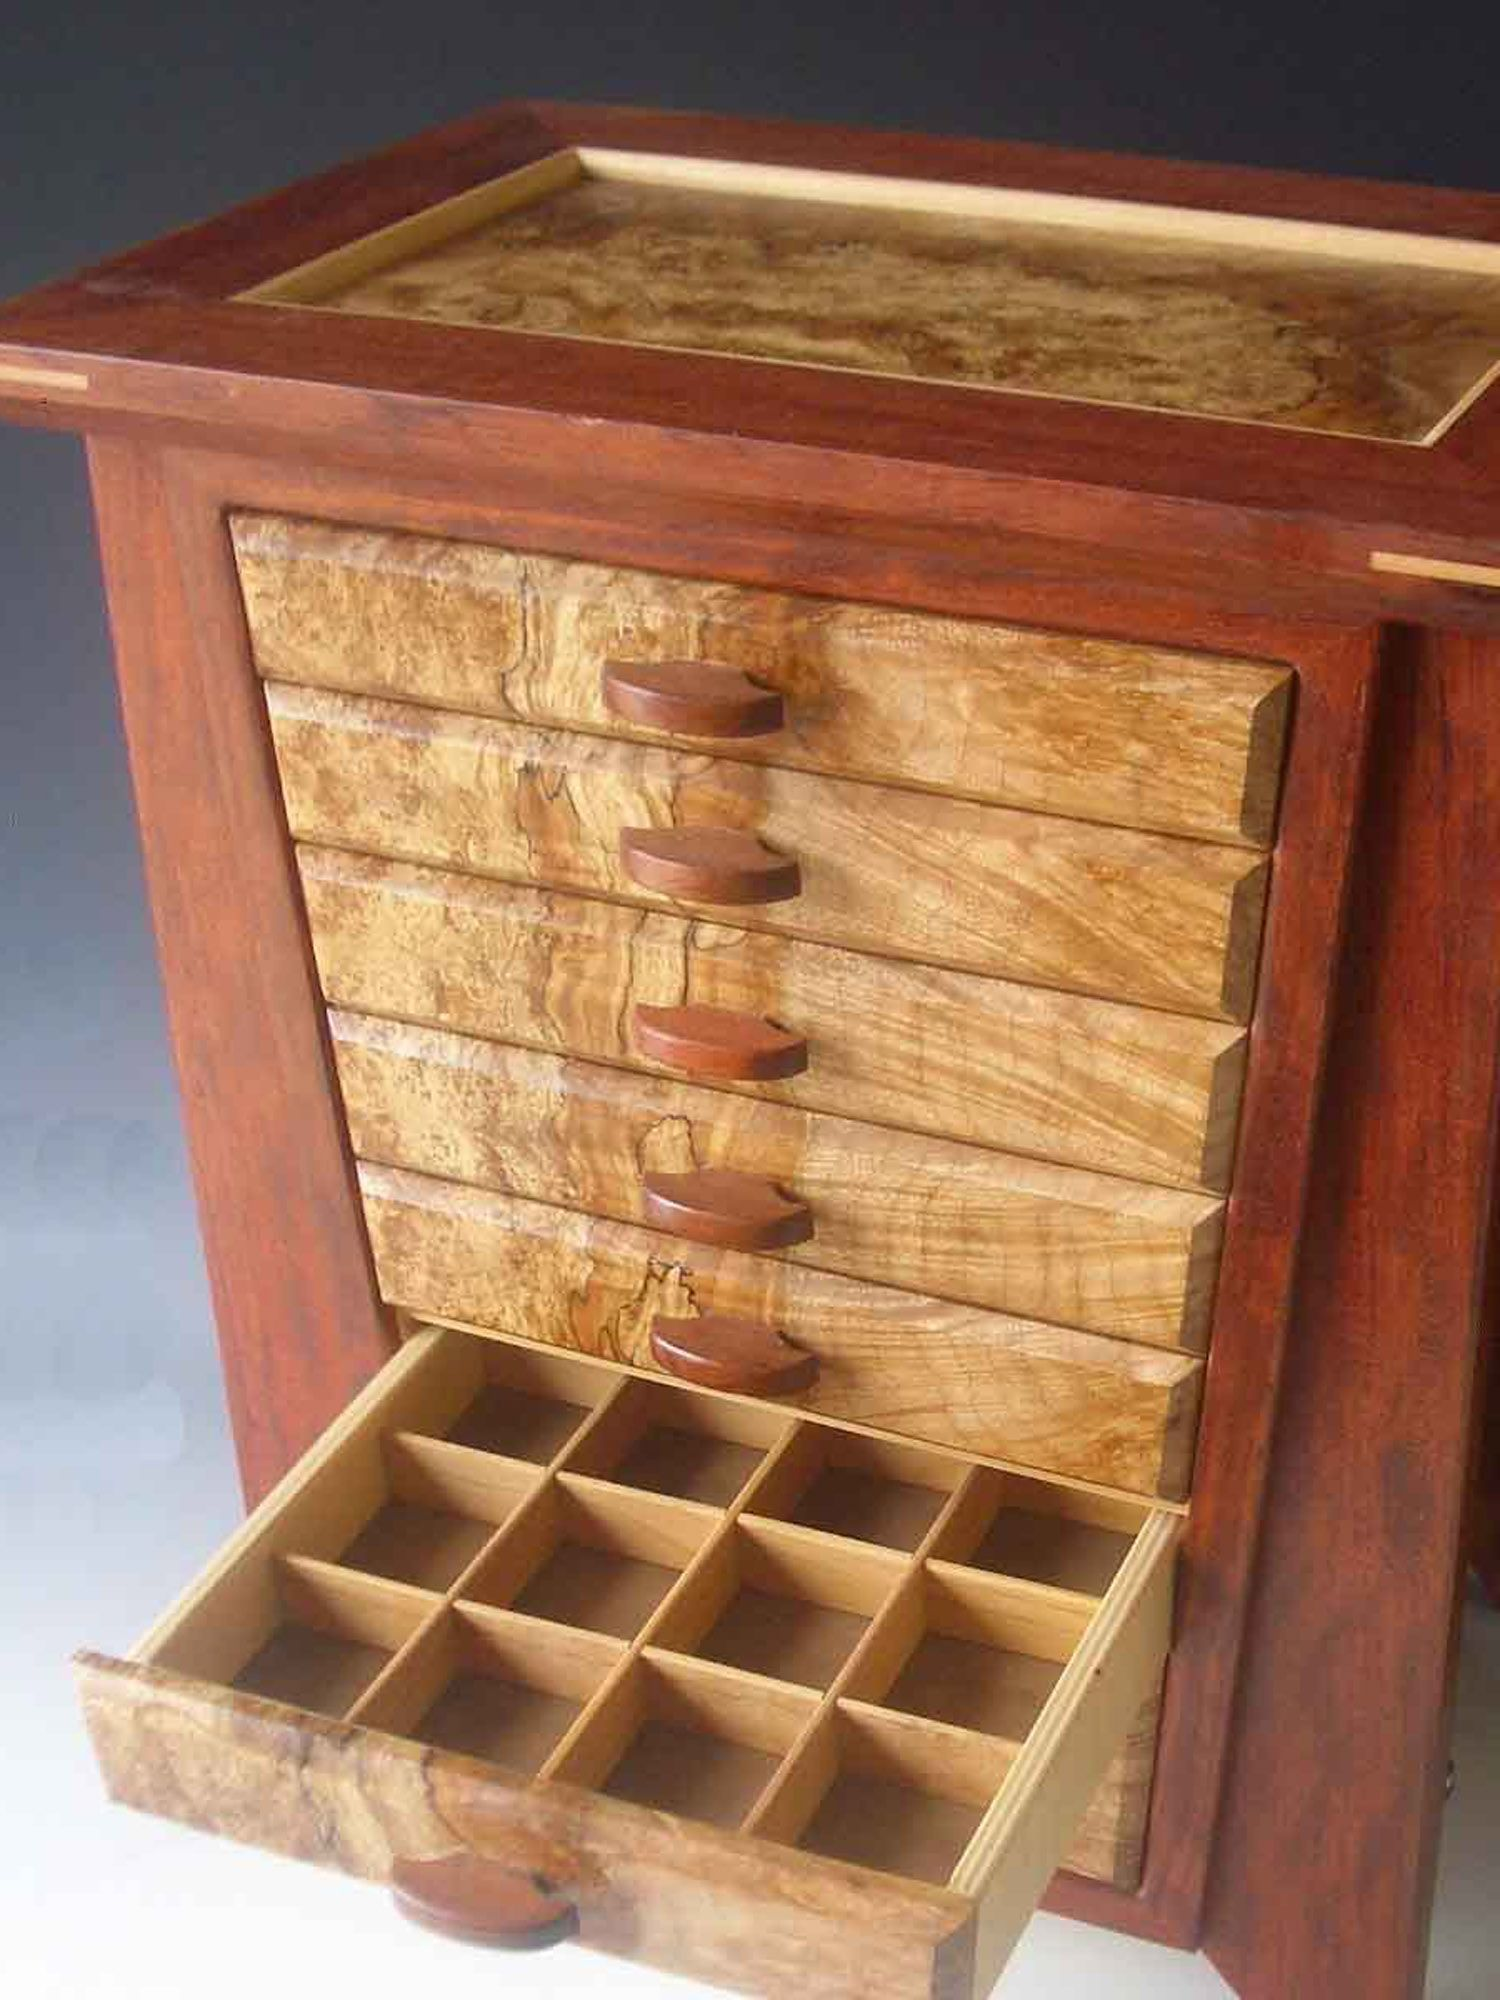 My Handmade Jewelry Boxes Are Made Of Exotic Woods Each